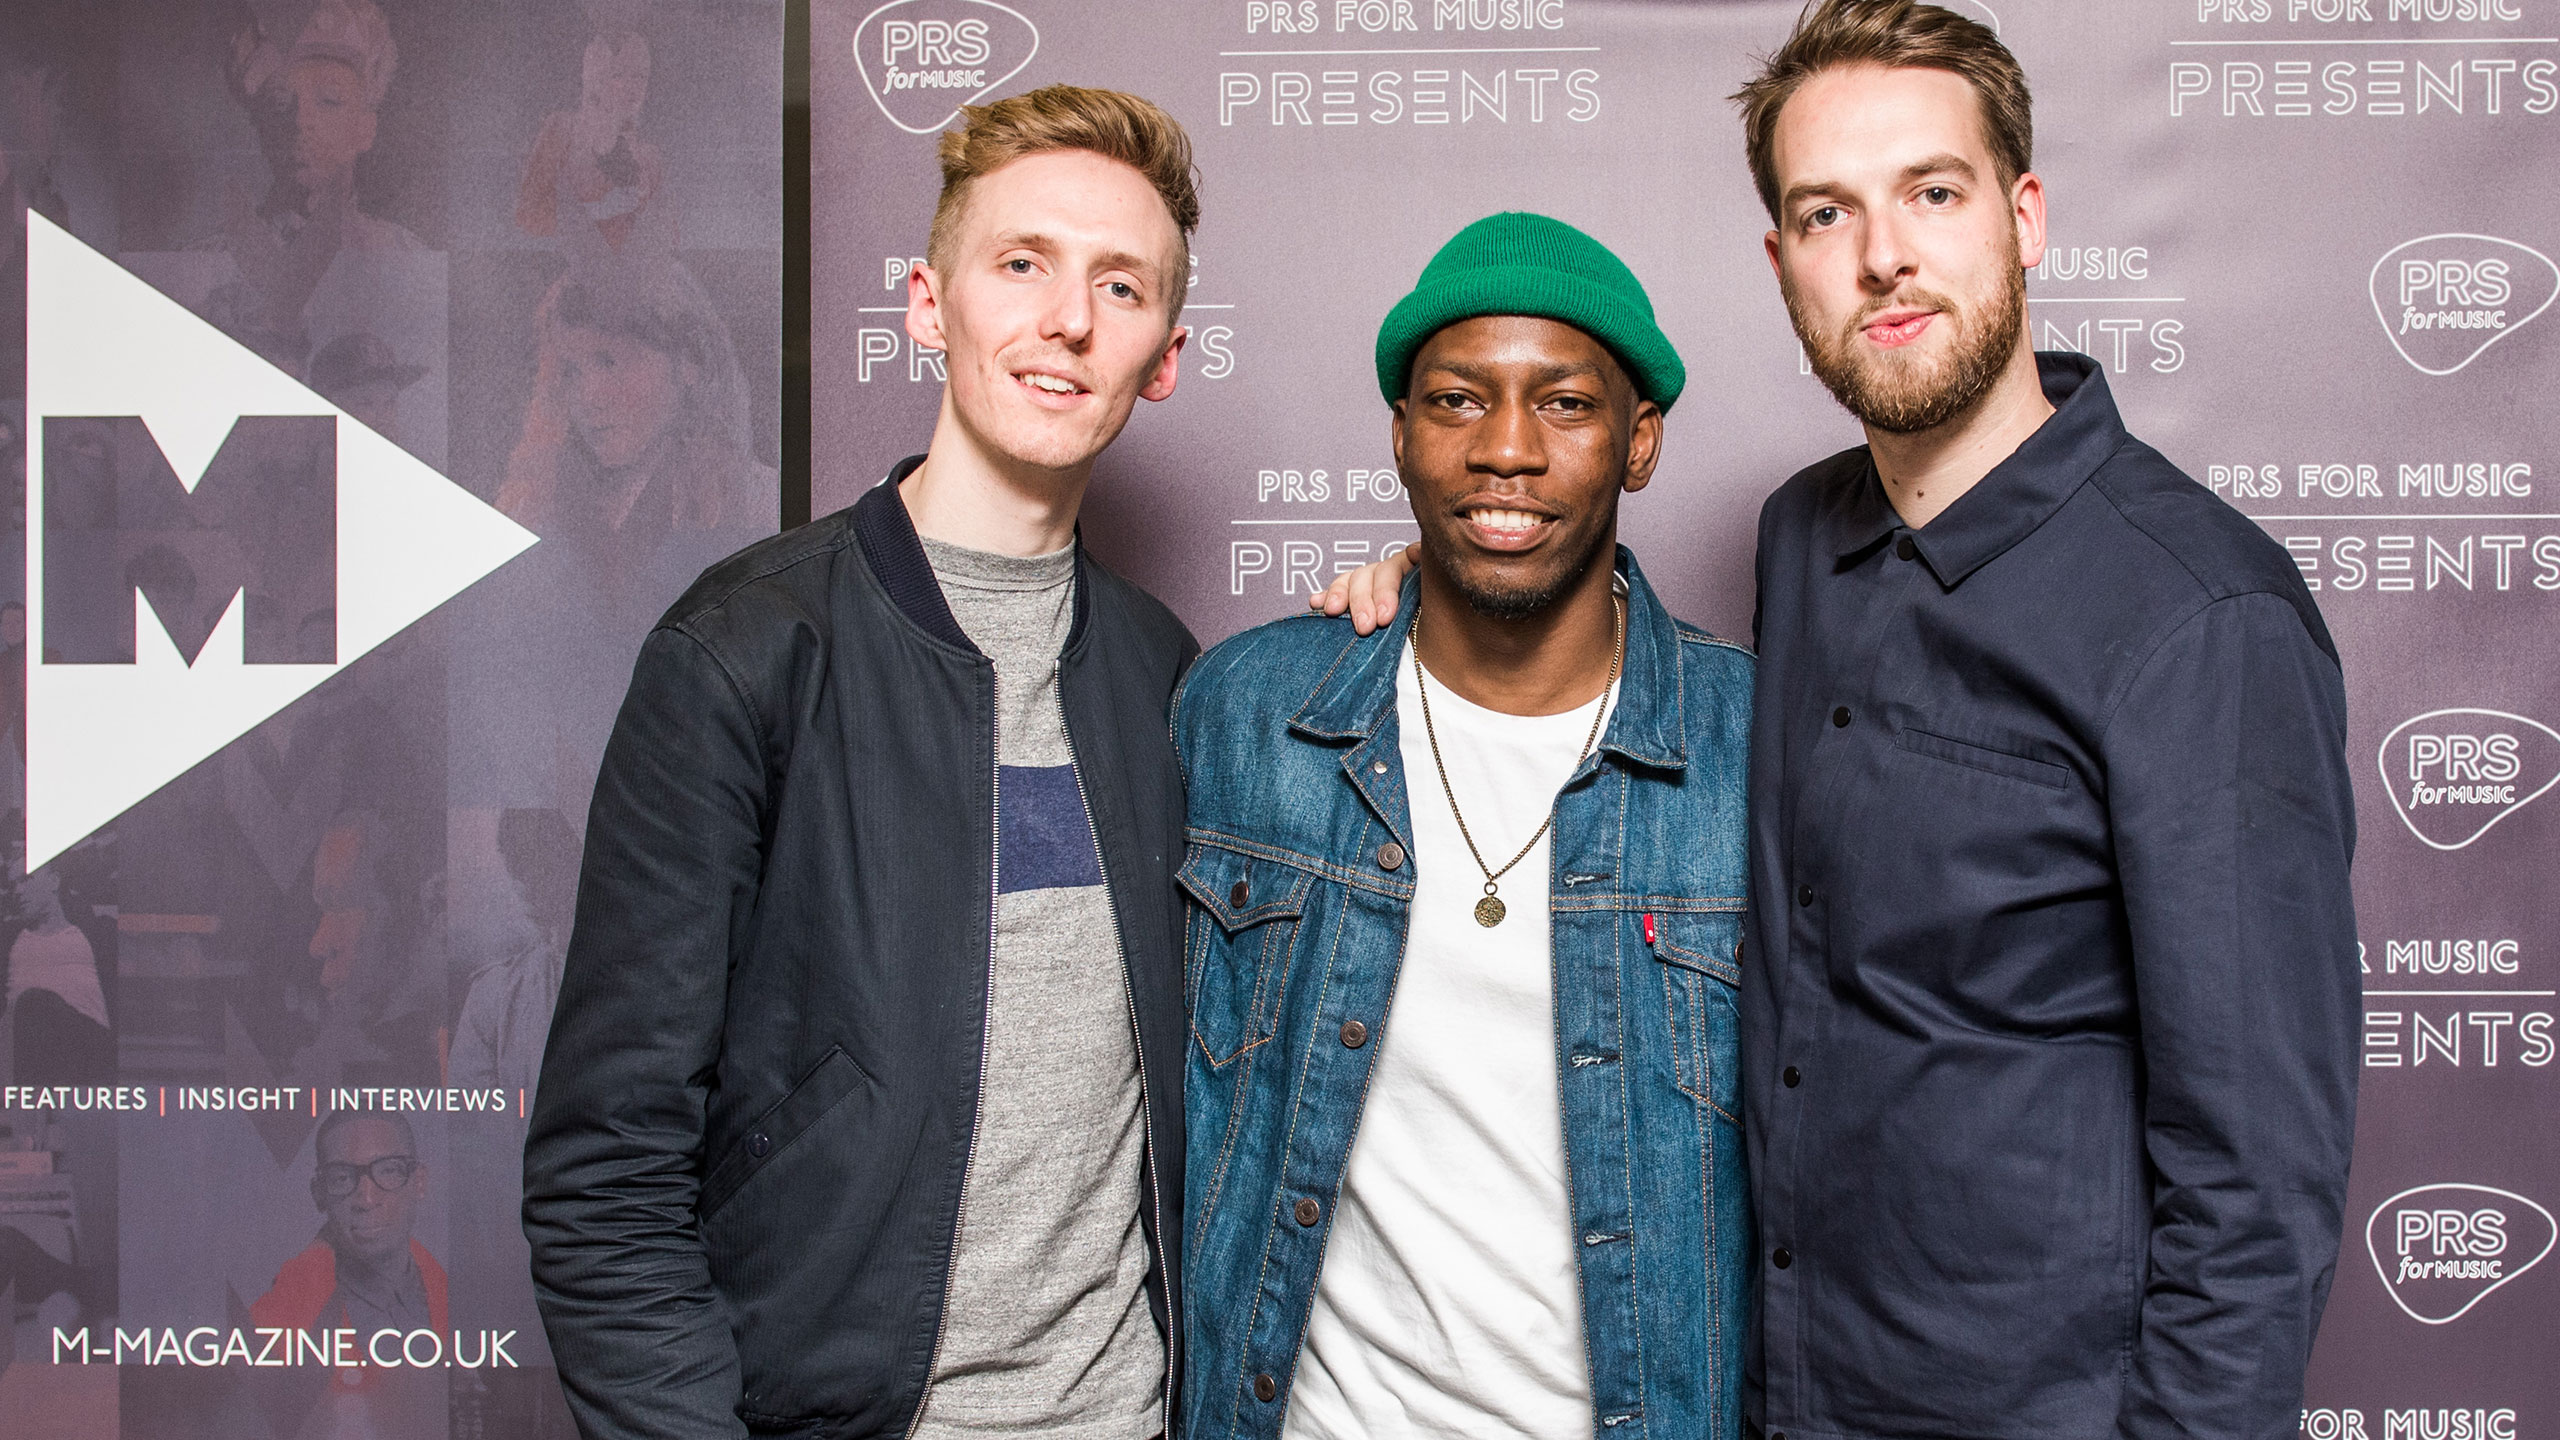 James Hatcher (Honne), Tiggs Da Author and Andy Clutterbuck (Honne) at PRS Presents